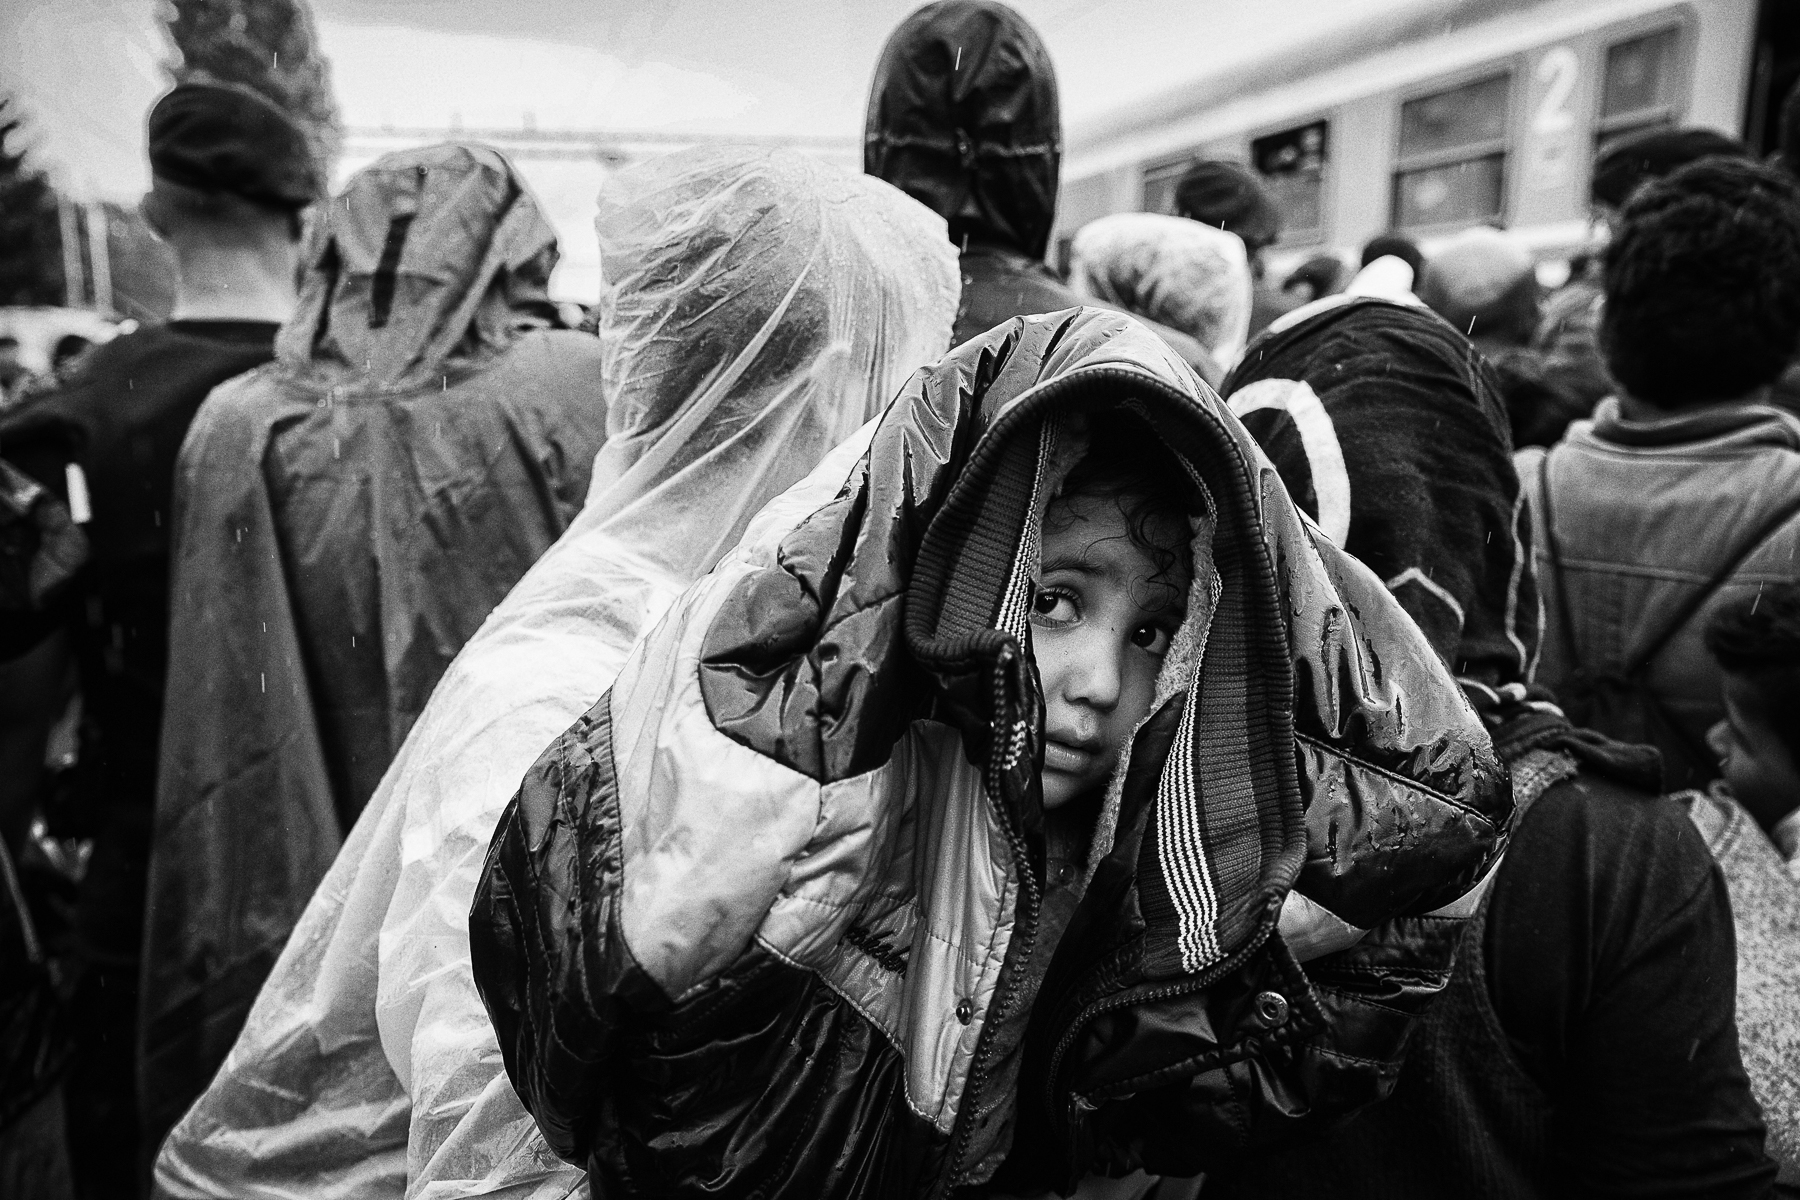 Croatie, septembre 2015. Des réfugiés attendent un train dans la gare de Tovarnik. Des enfants sous la pluie.